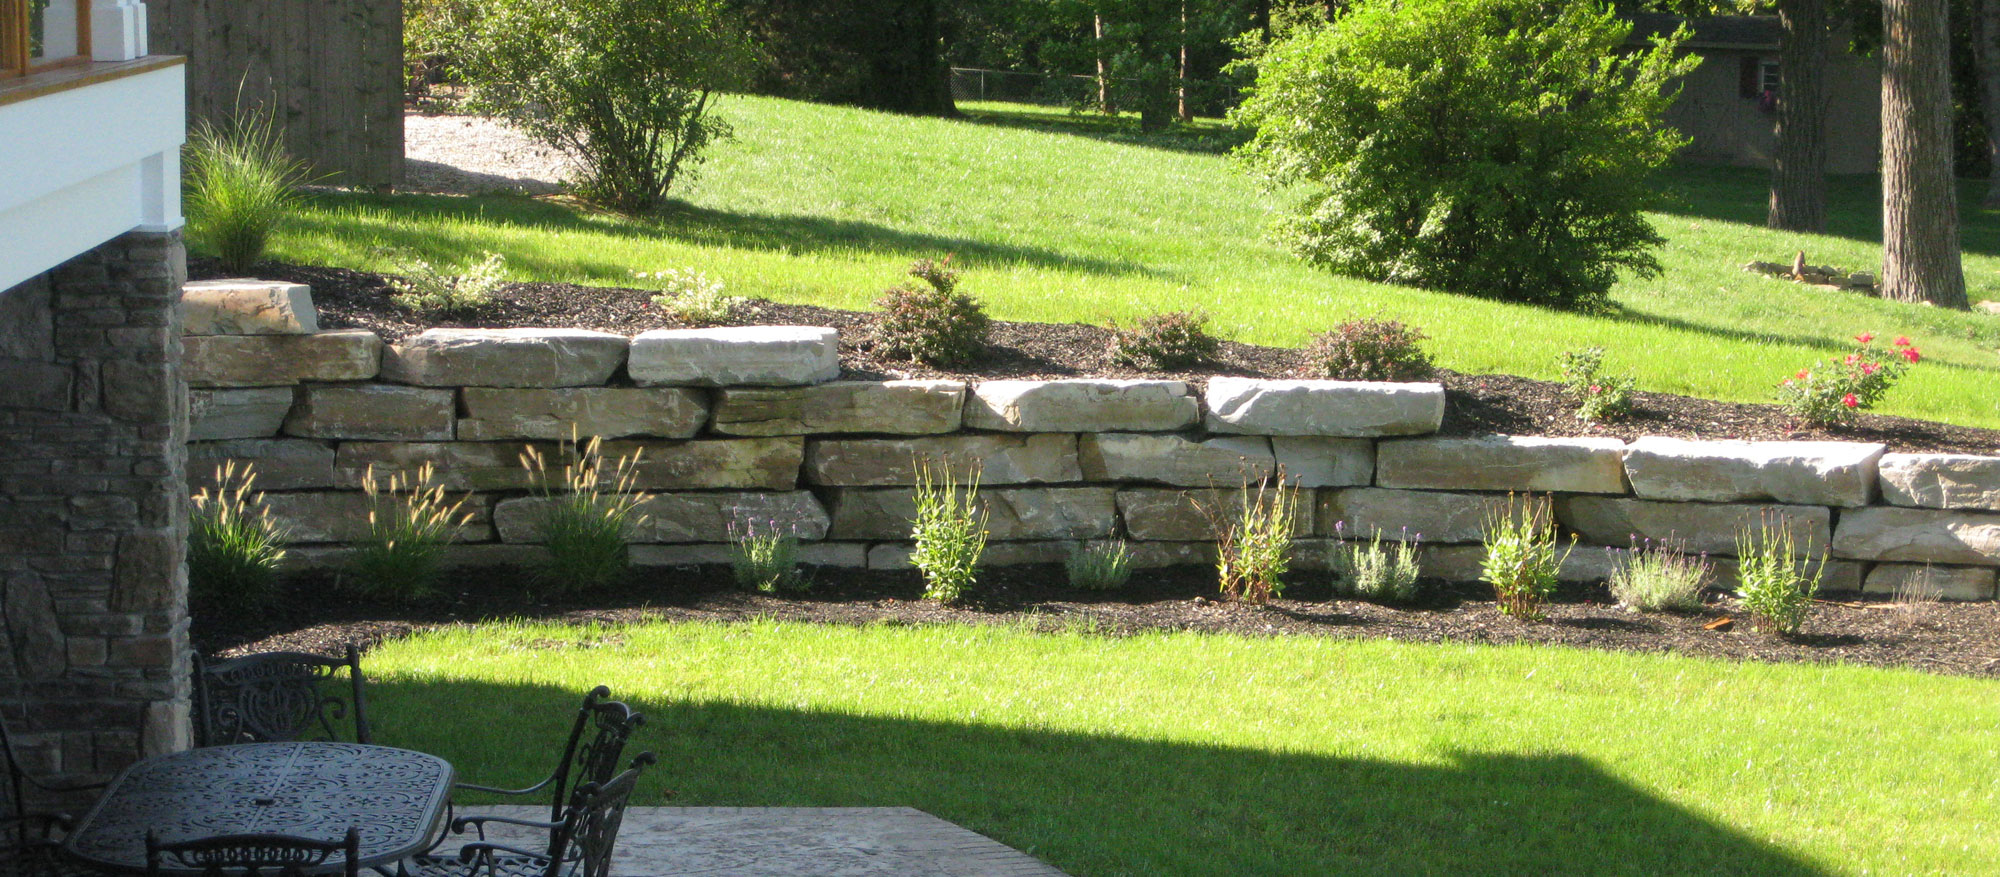 28 hills landscaping supplies rouse hill landscape for Landscaping rocks ann arbor